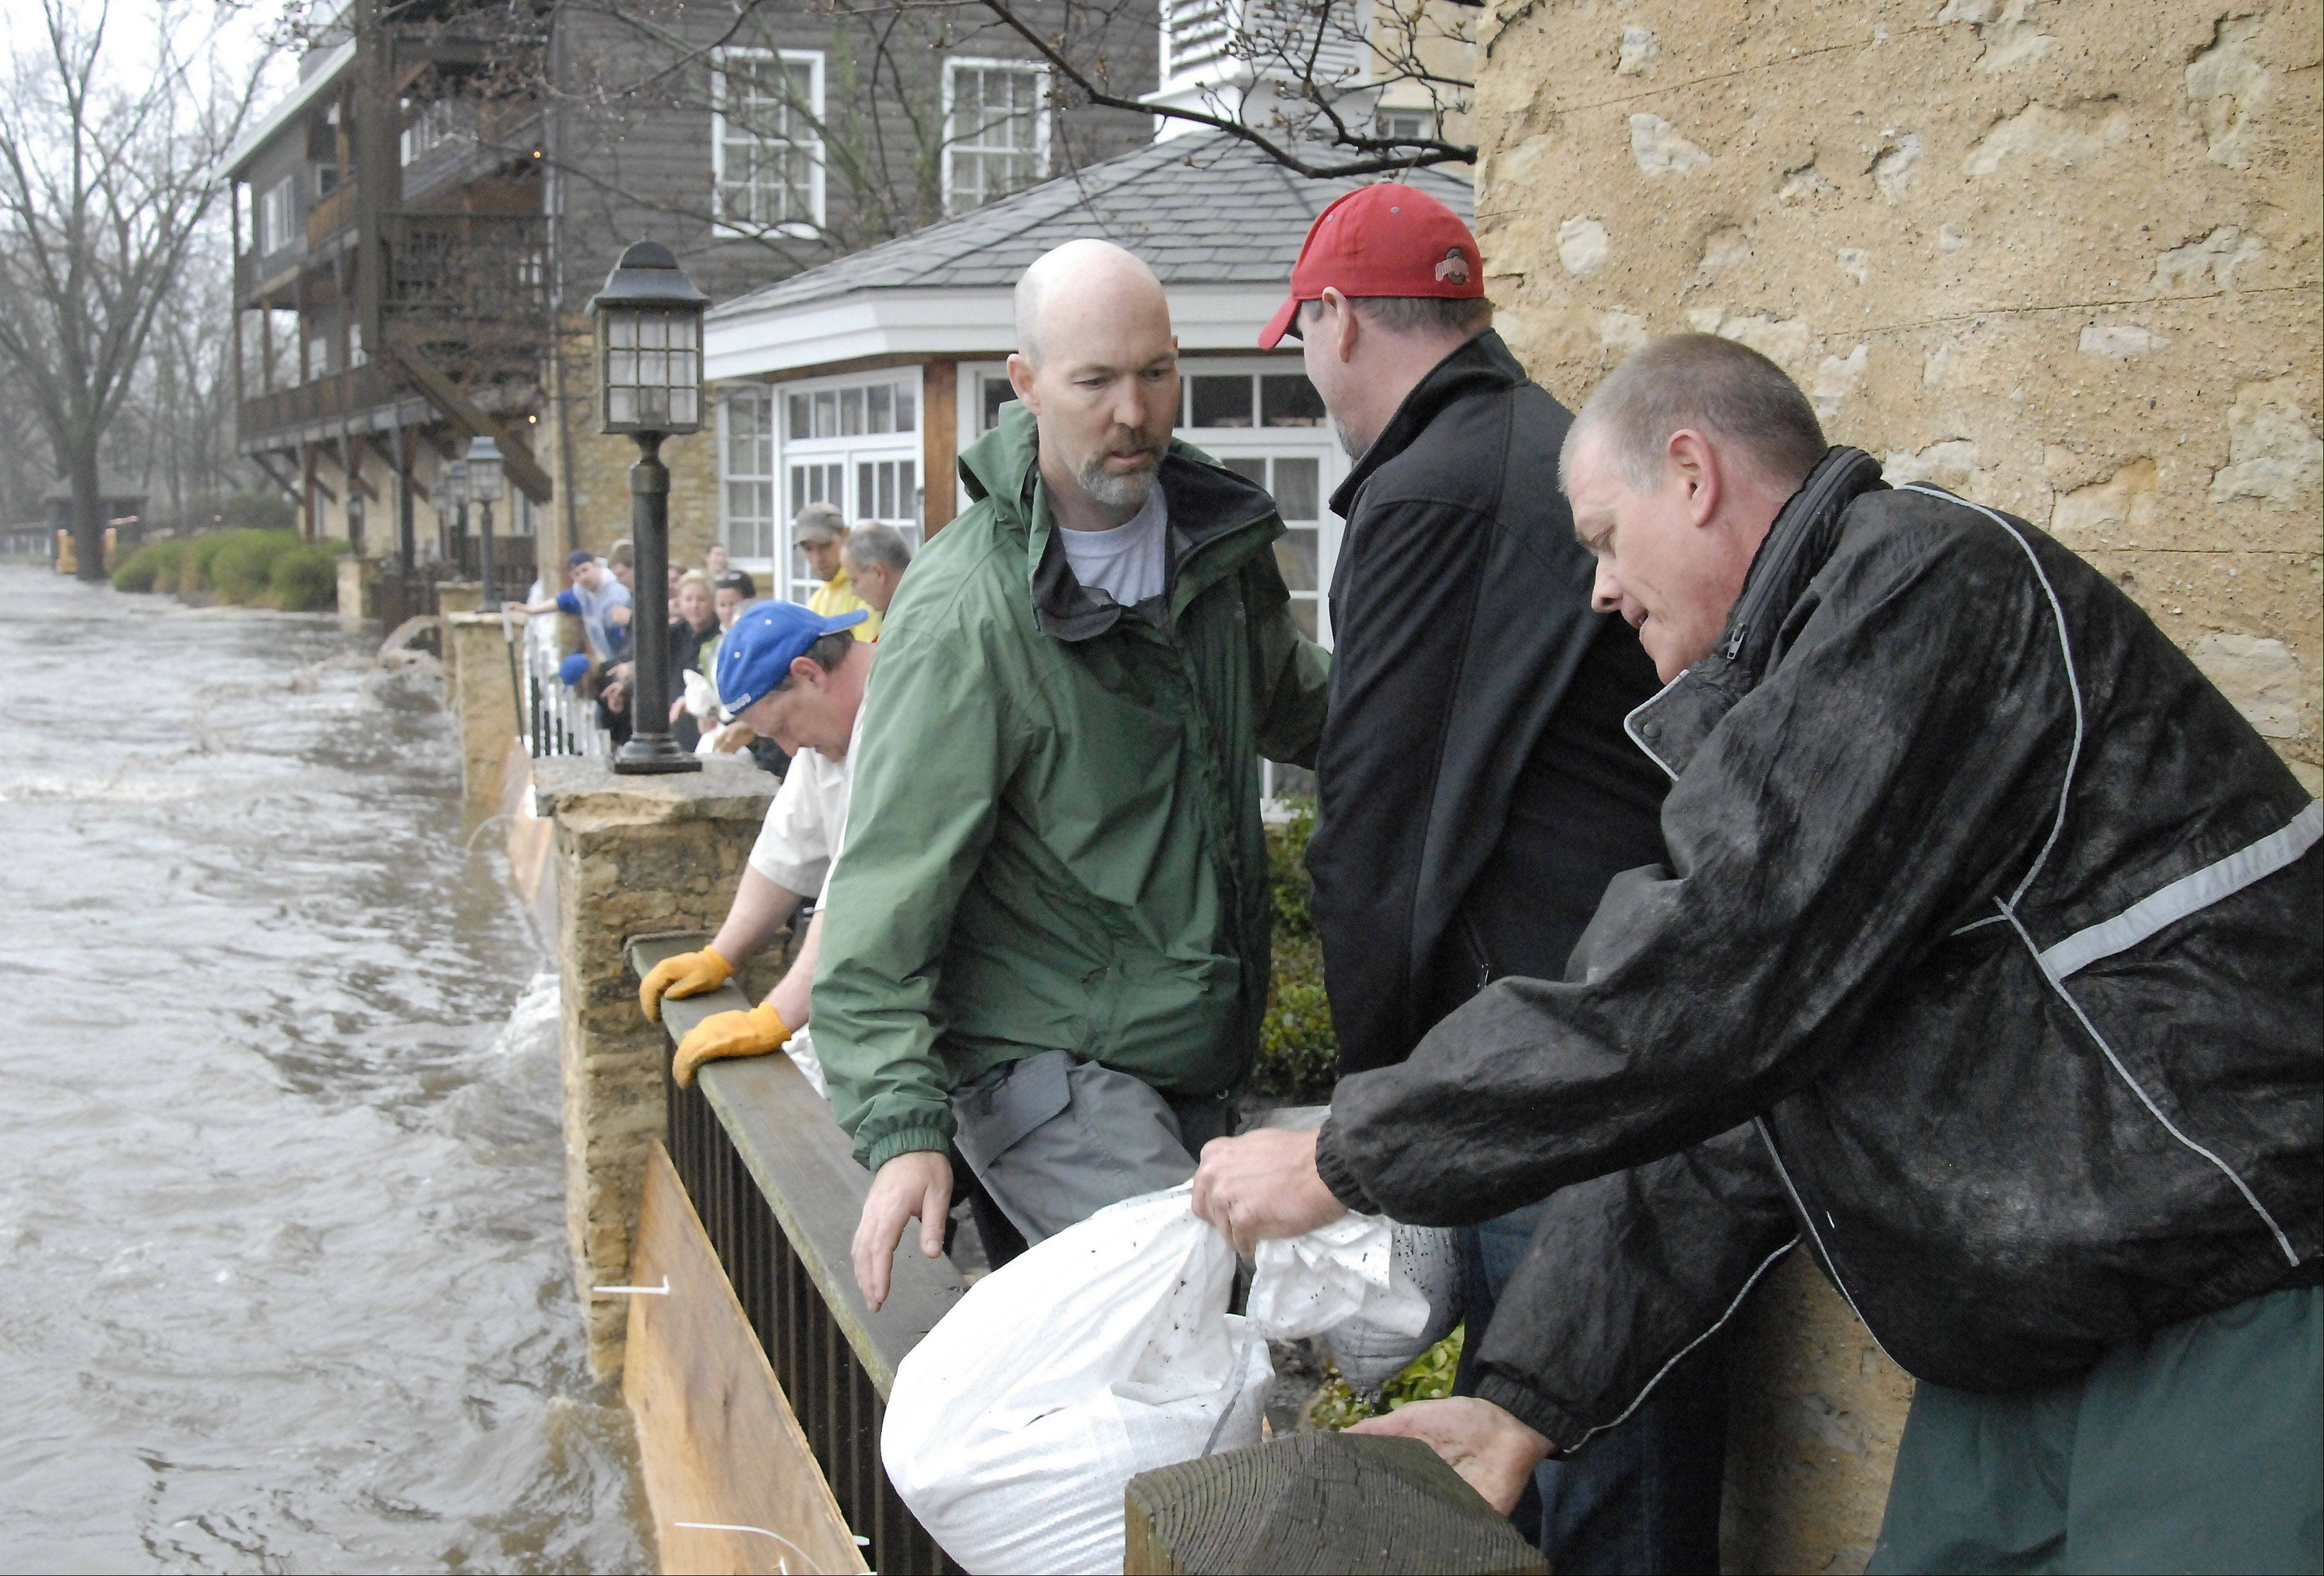 Herrington Inn owner Paul Ruby passes volunteer sandbaggers Chris Schmedes of Geneva and Brad Umholtz of South Elgin as they try to stop the Fox River from flooding the Geneva hotel on Thursday, April 18. Ruby put out the call for help early and people came by the dozens to help out. Many said that Ruby has helped the community so much and it was their turn to help him.